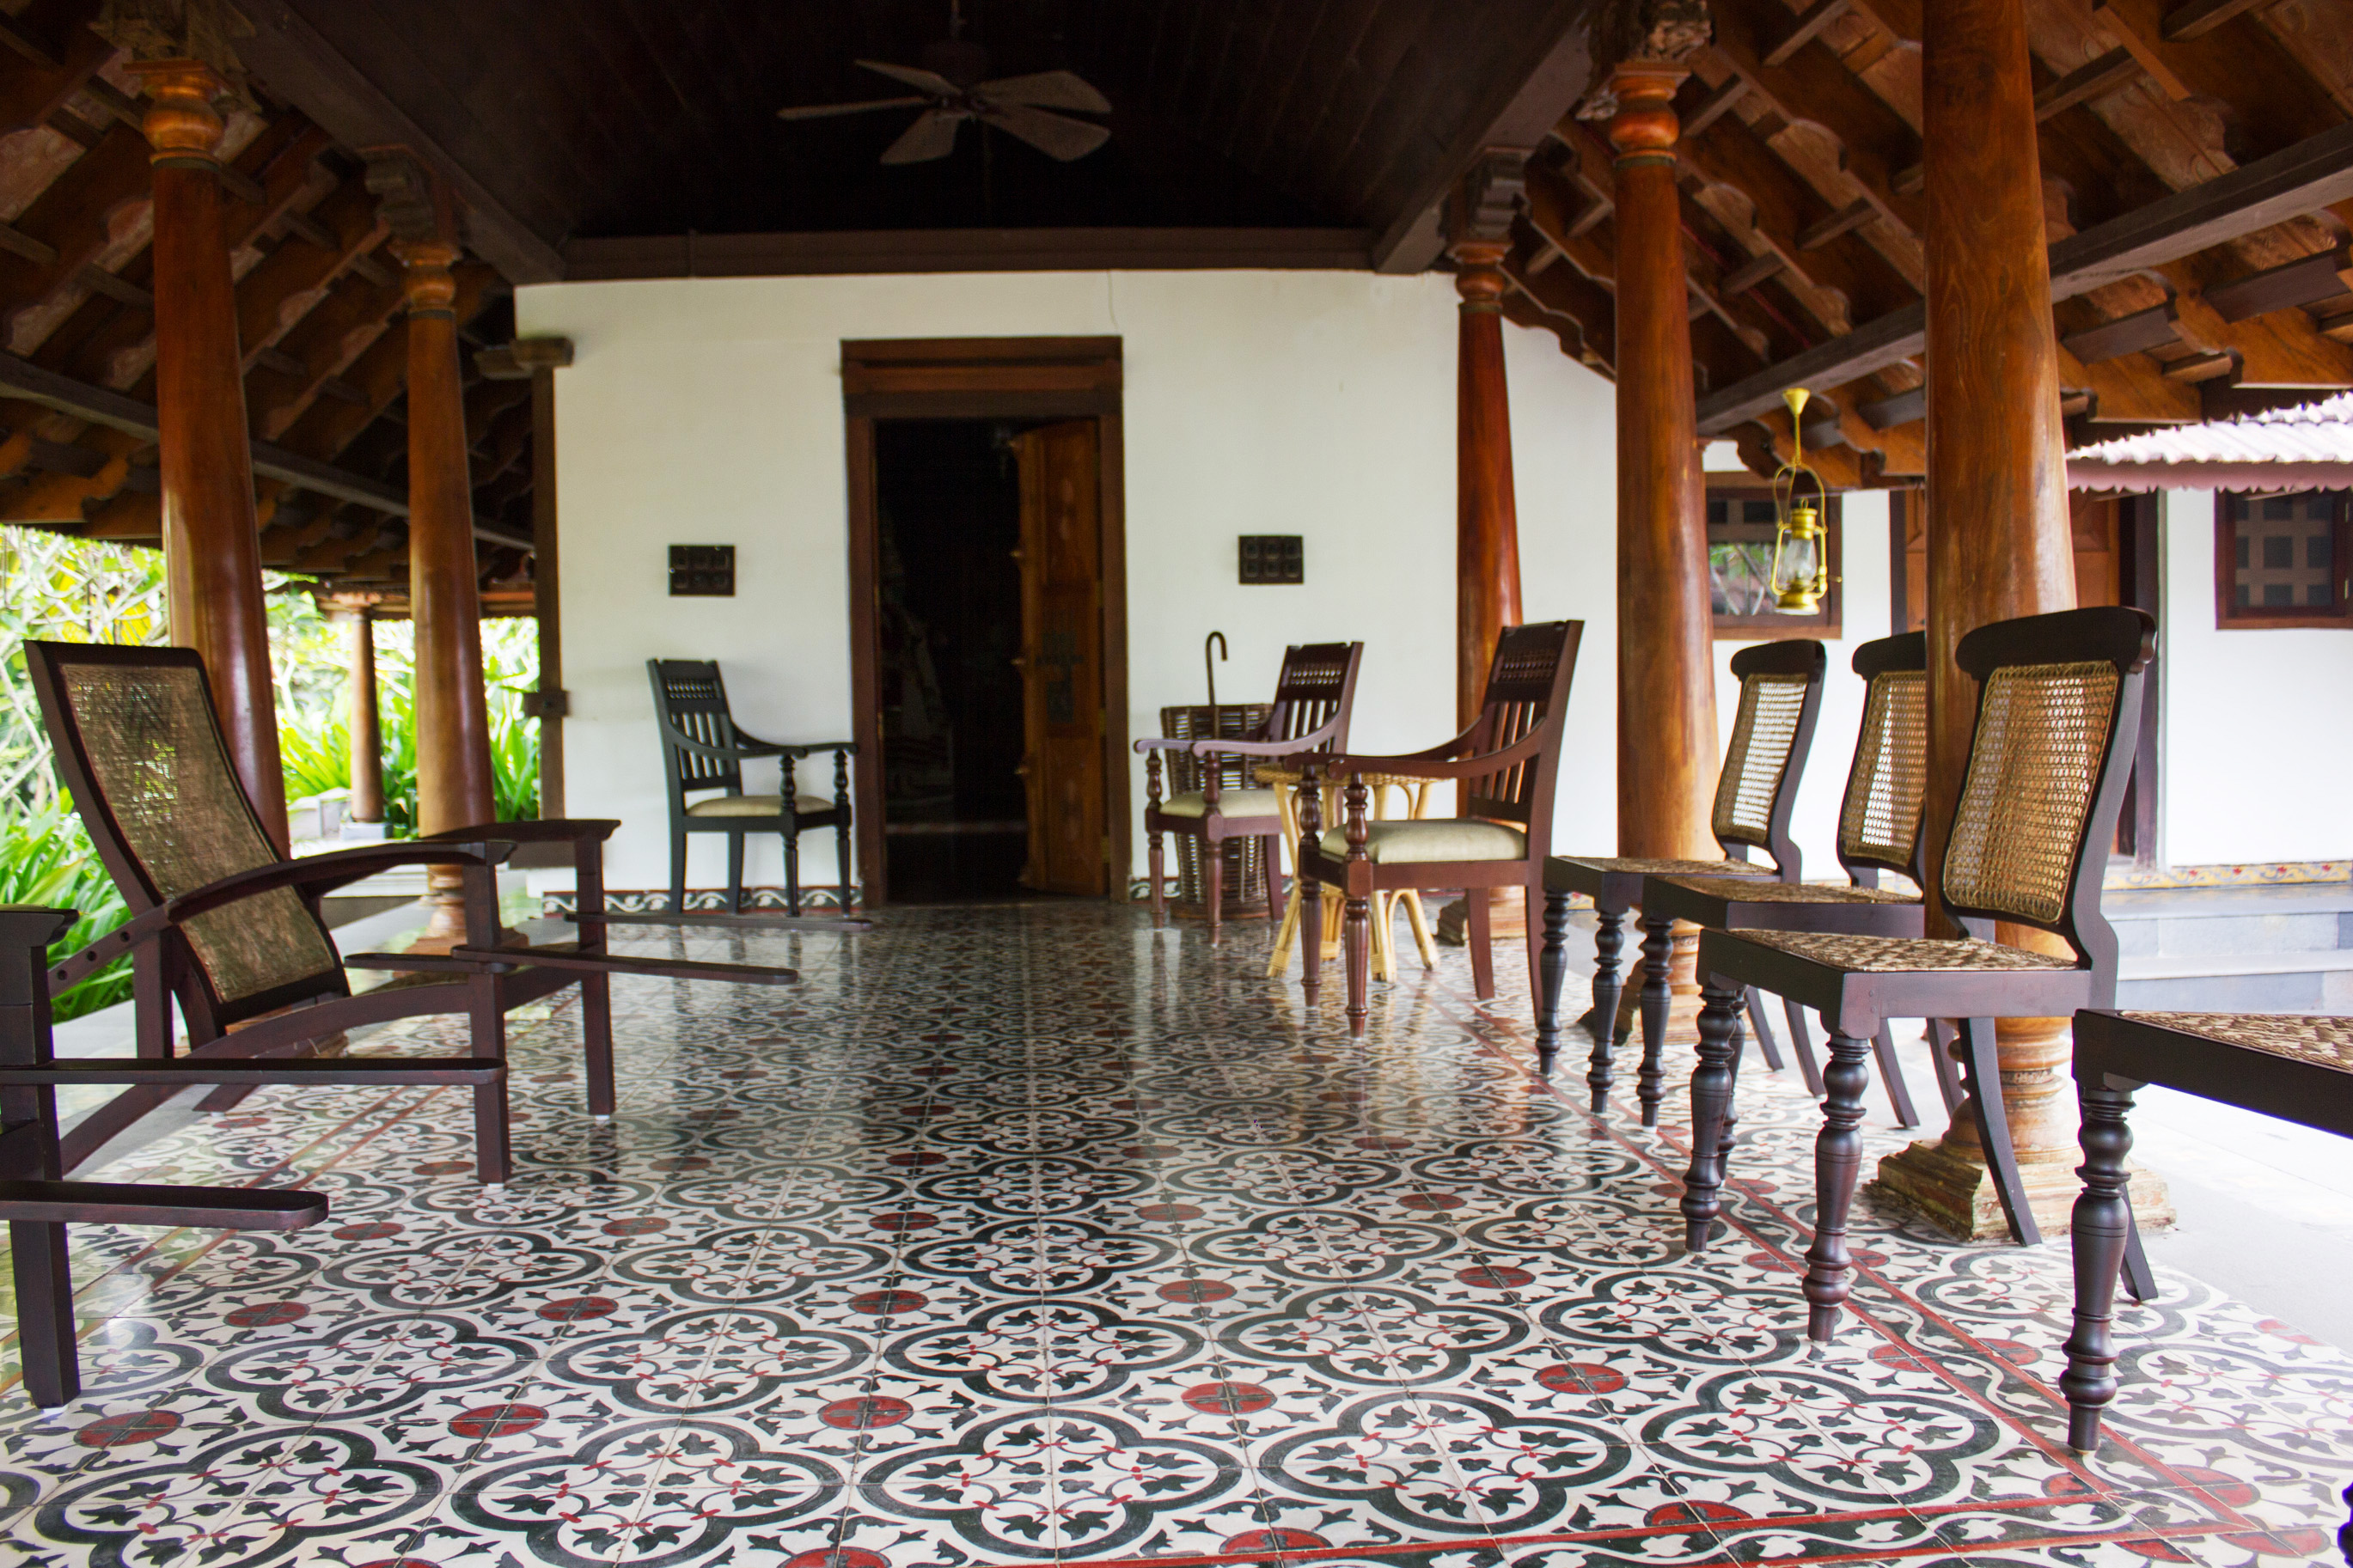 The porch of a heritage cottage - a veritable museum of Malayali lifestyle